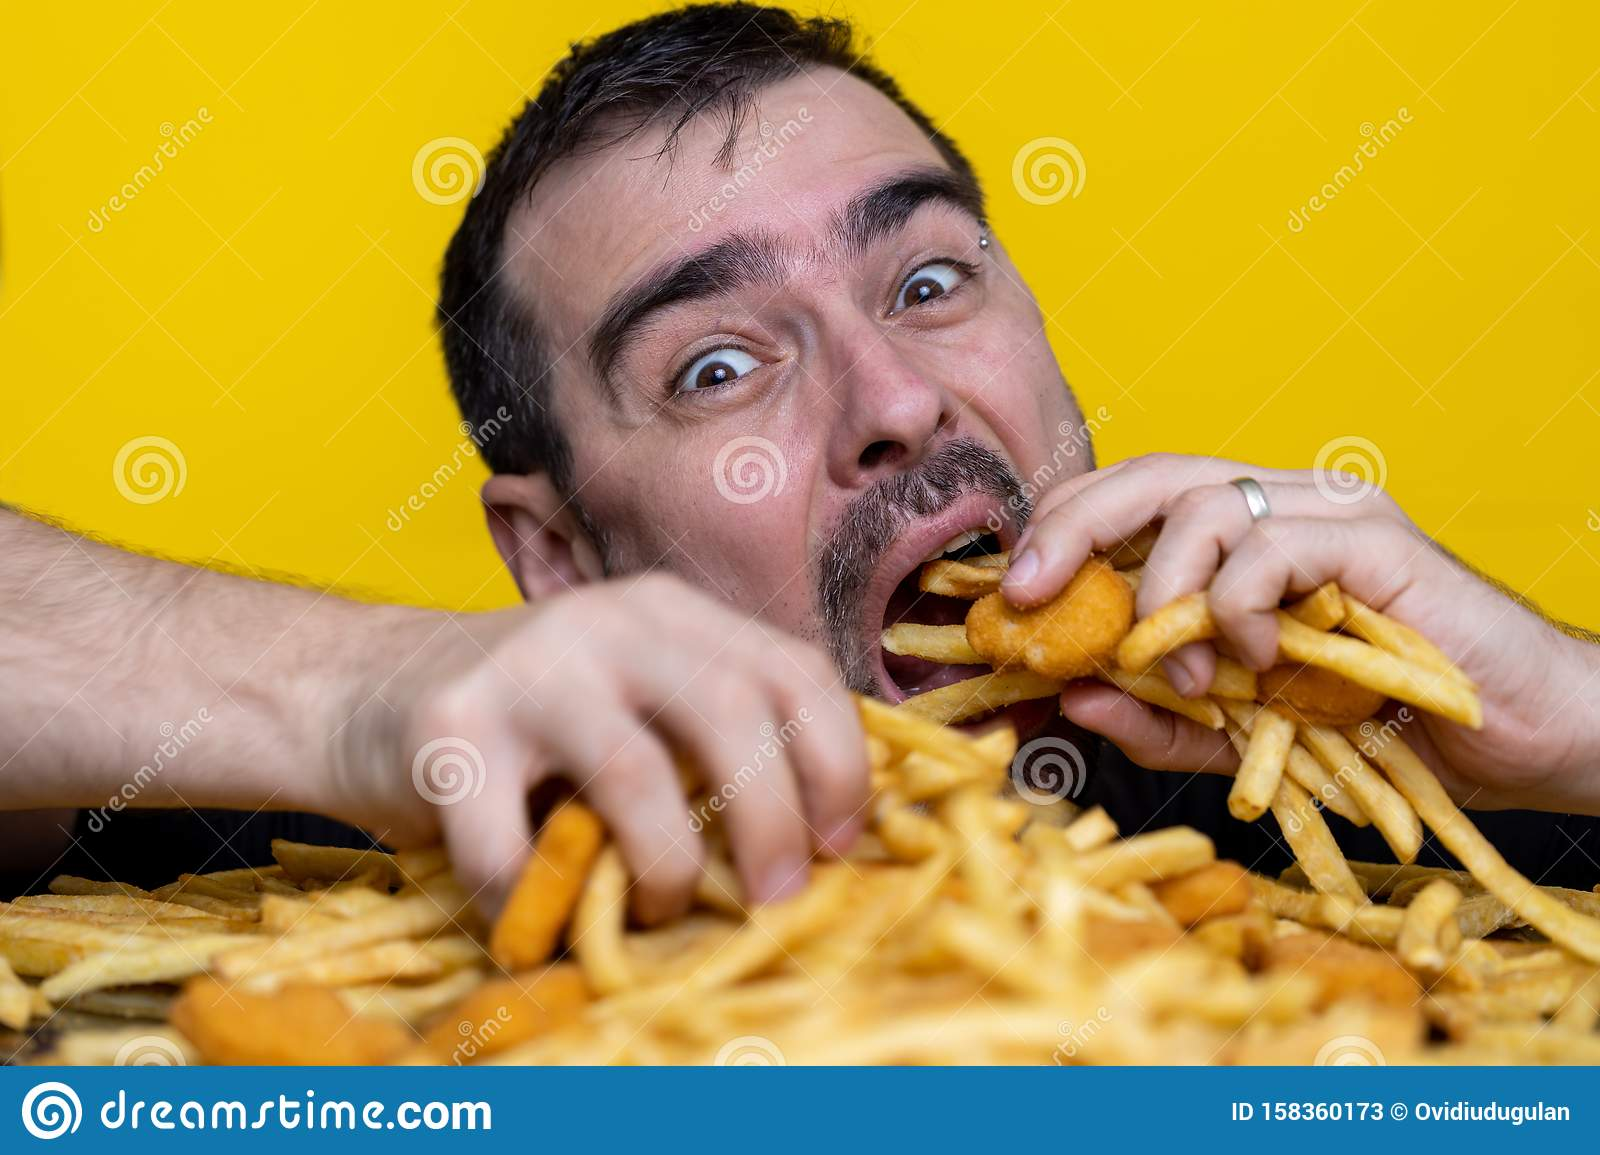 Eating junk food nutrition and dietary health problem concept. Young man eating with two hands a huge amount of unhealthy fast